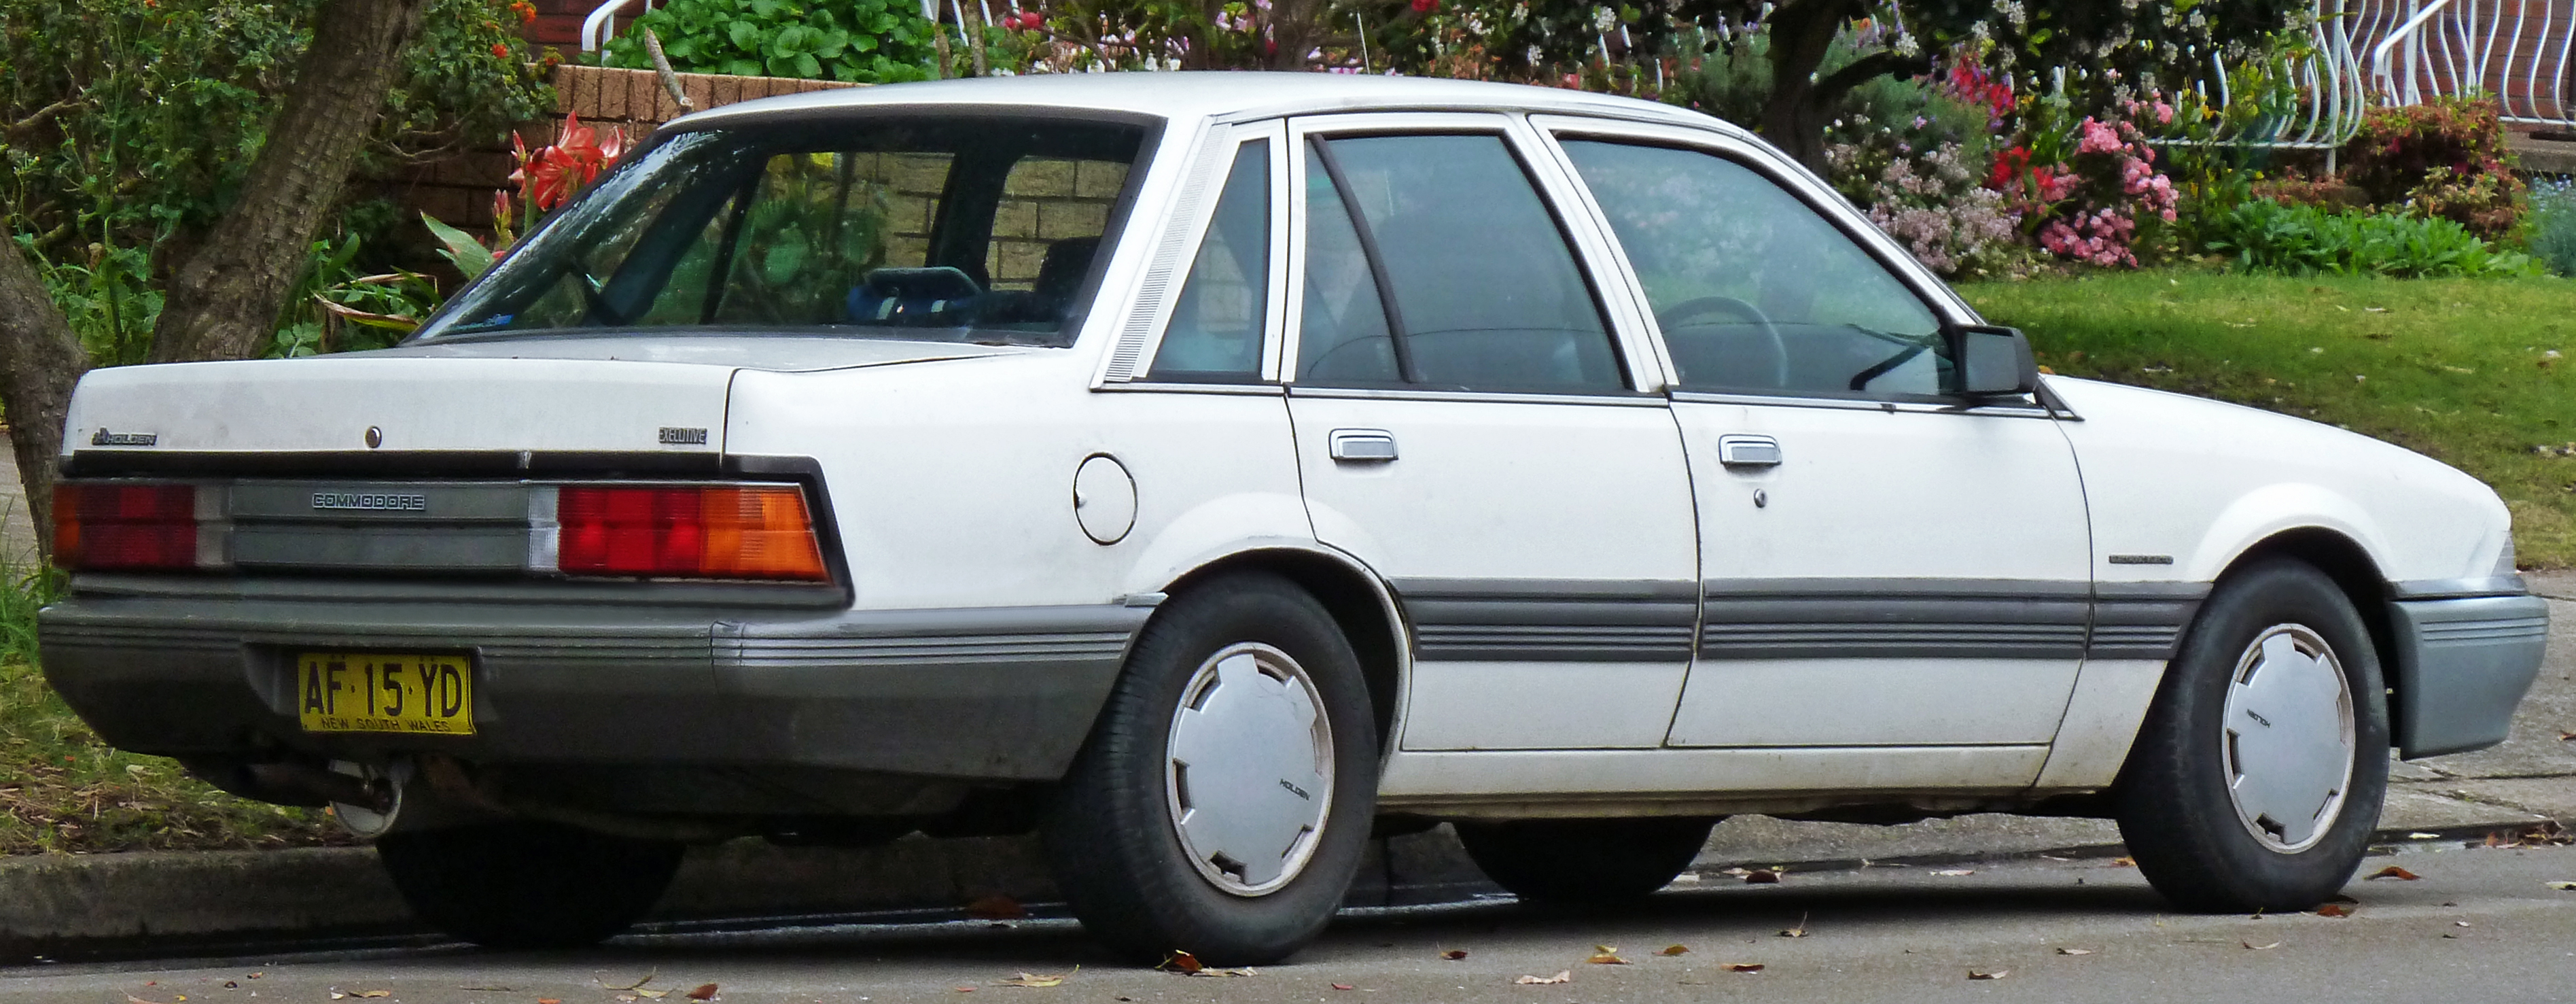 1986 Holden Vl: File:1986-1988 Holden VL Commodore Executive Sedan 04.jpg